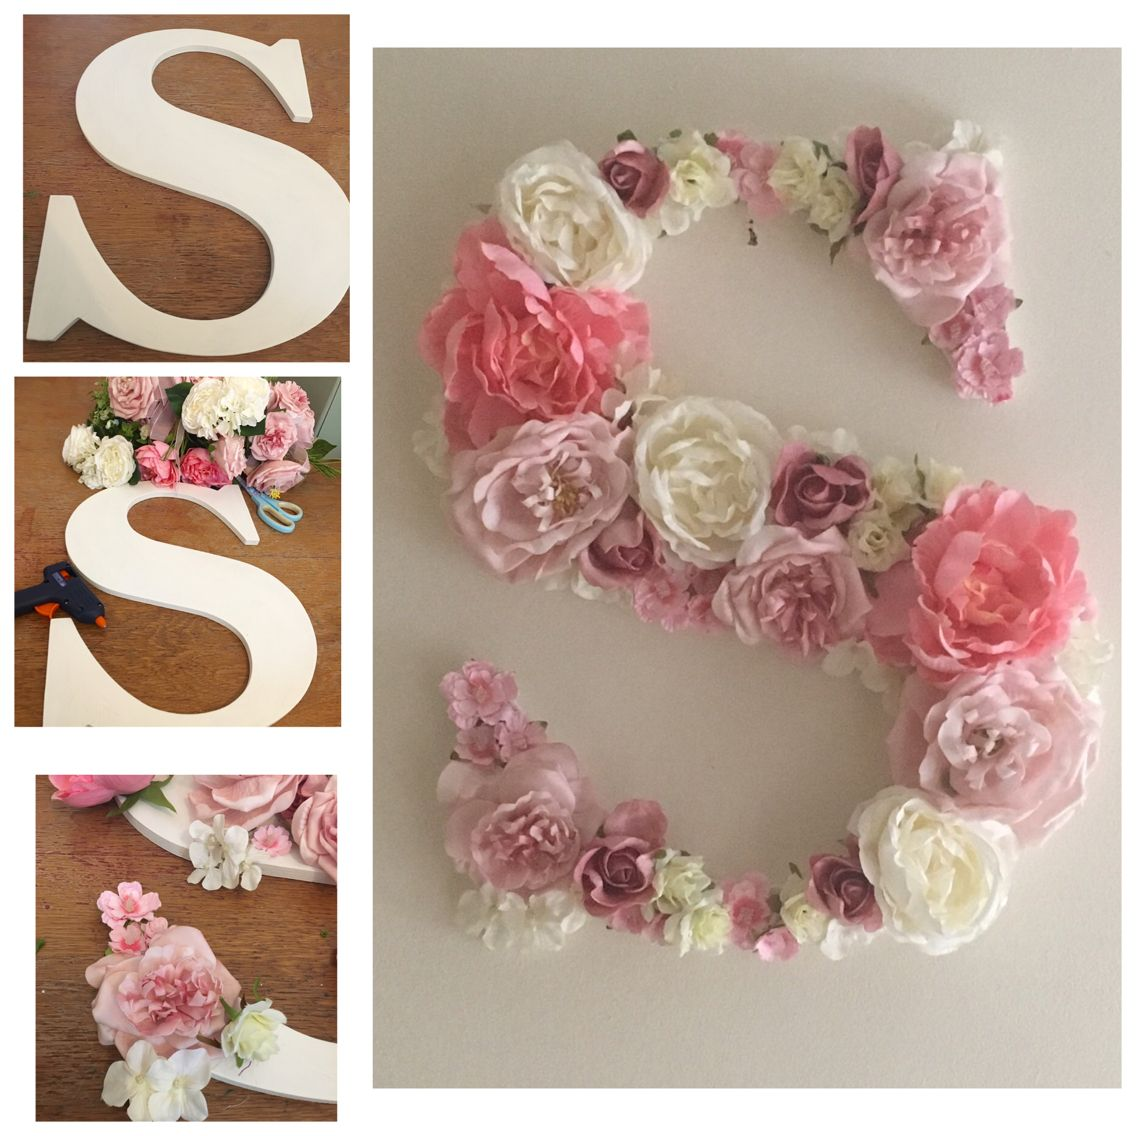 wooden s letter decorated with silk flowers wooden sign